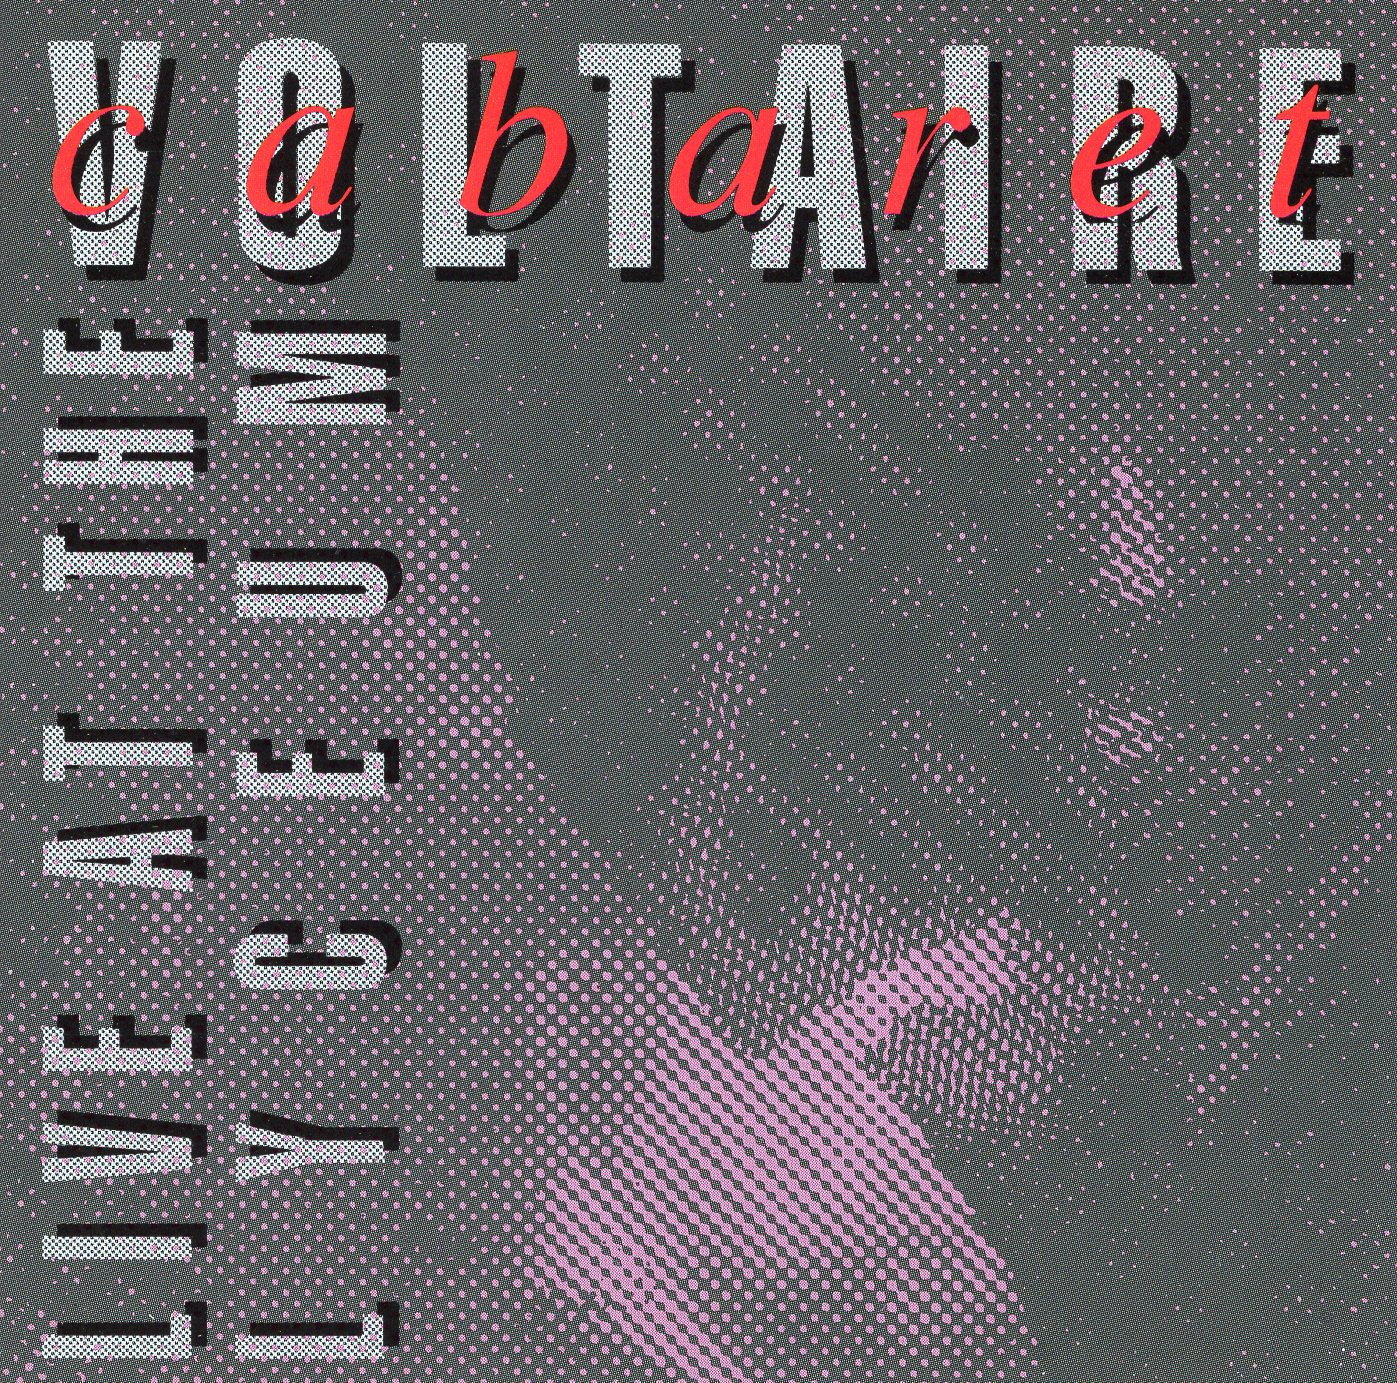 """Cabaret voltaire Live at the Lyceum"" Cabaret Voltaire"